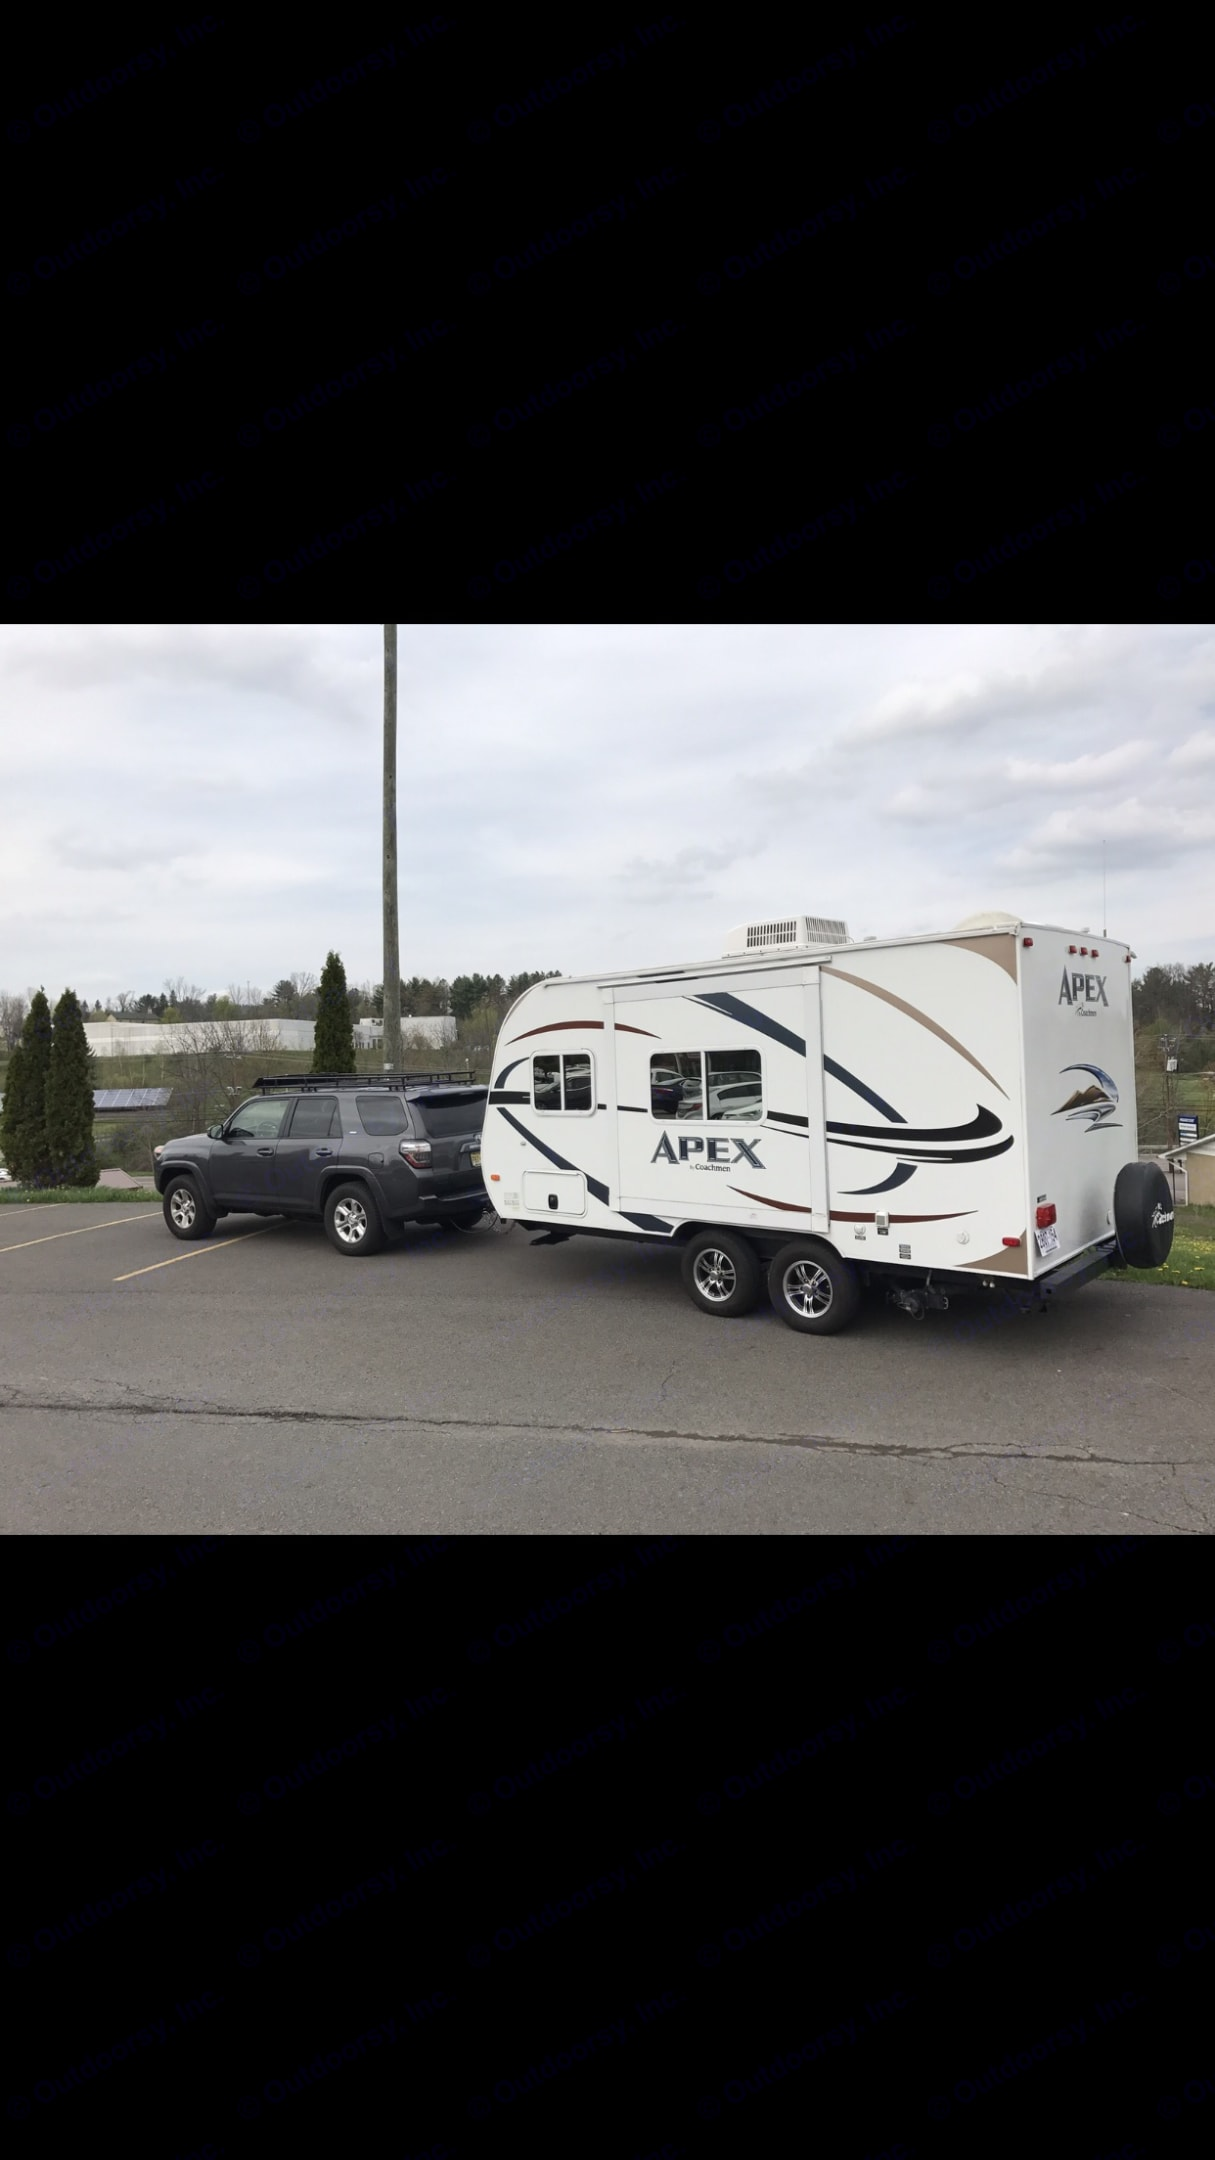 Photo of my Toyota 4-Runner rowing this trailer.. Coachmen Apex 2012